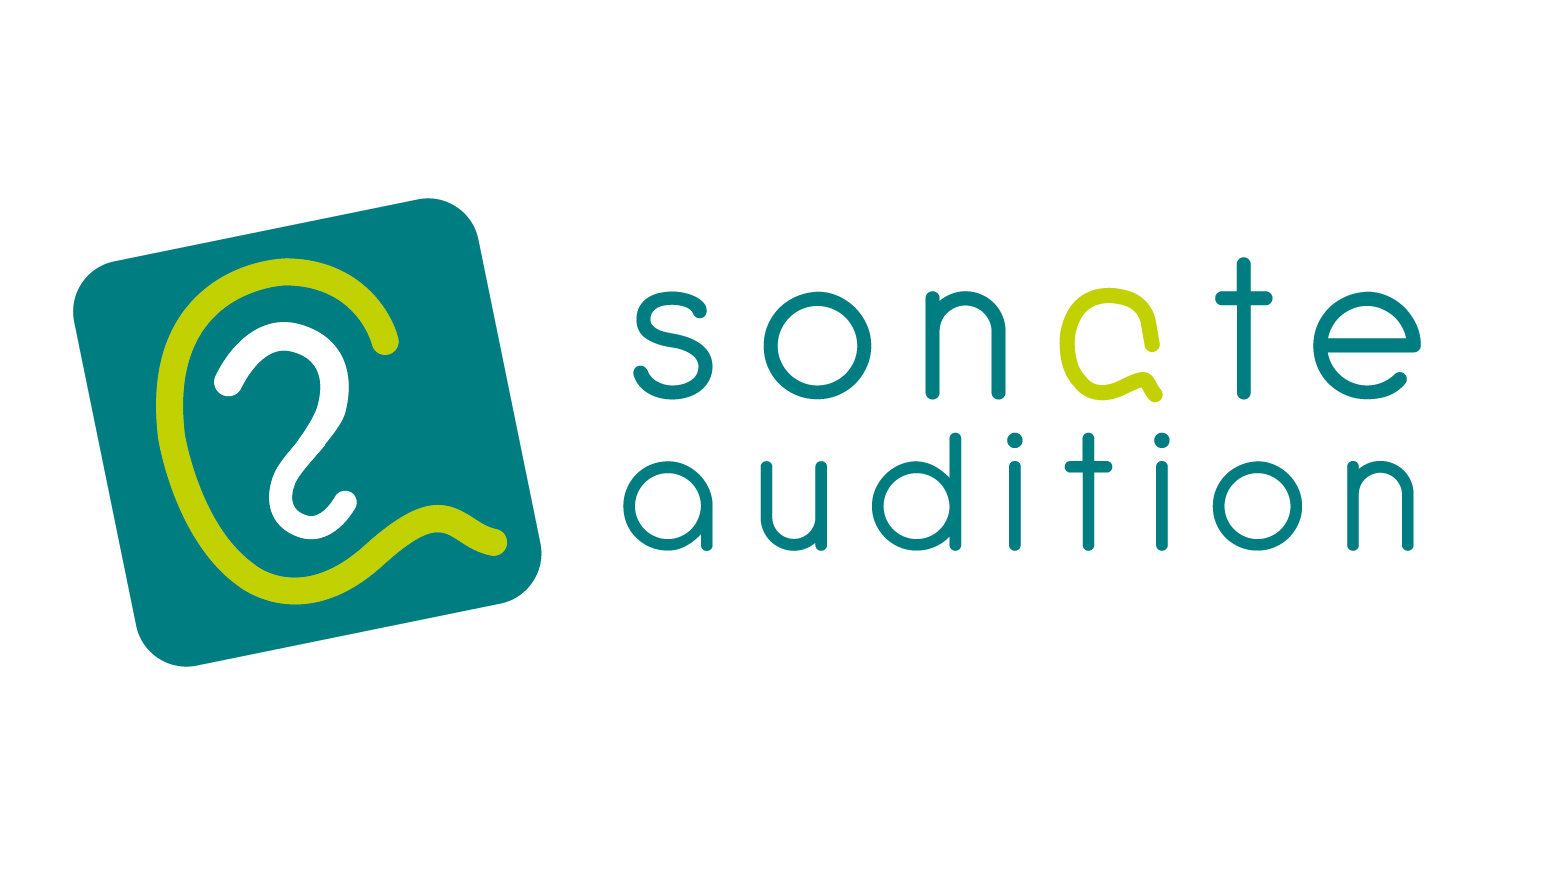 SONATE AUDITION